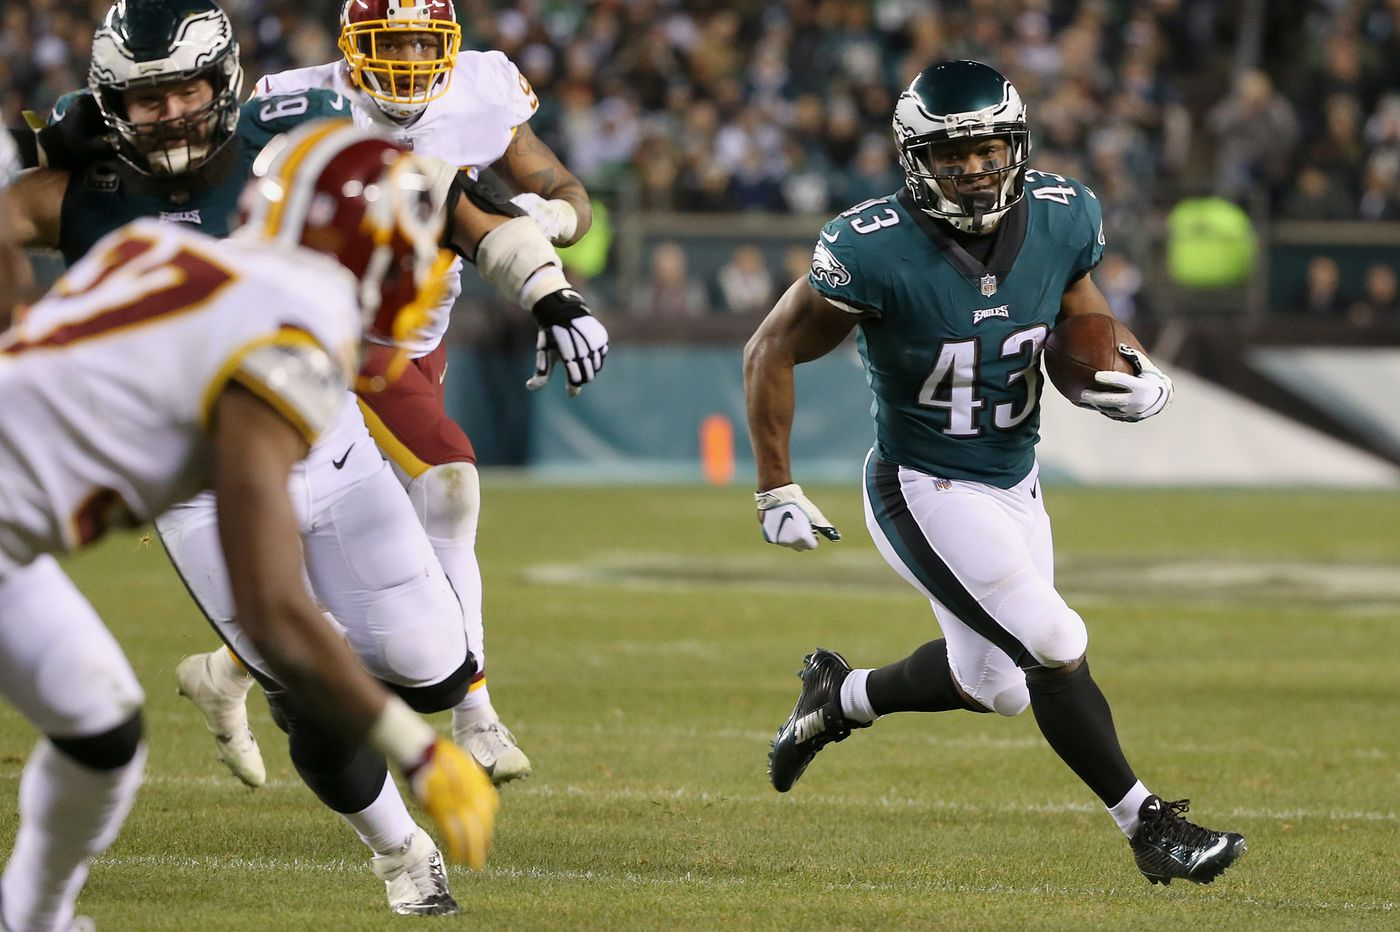 Against the Redskins, the Eagles offense finally found its groove. Will it matter? | David Murphy